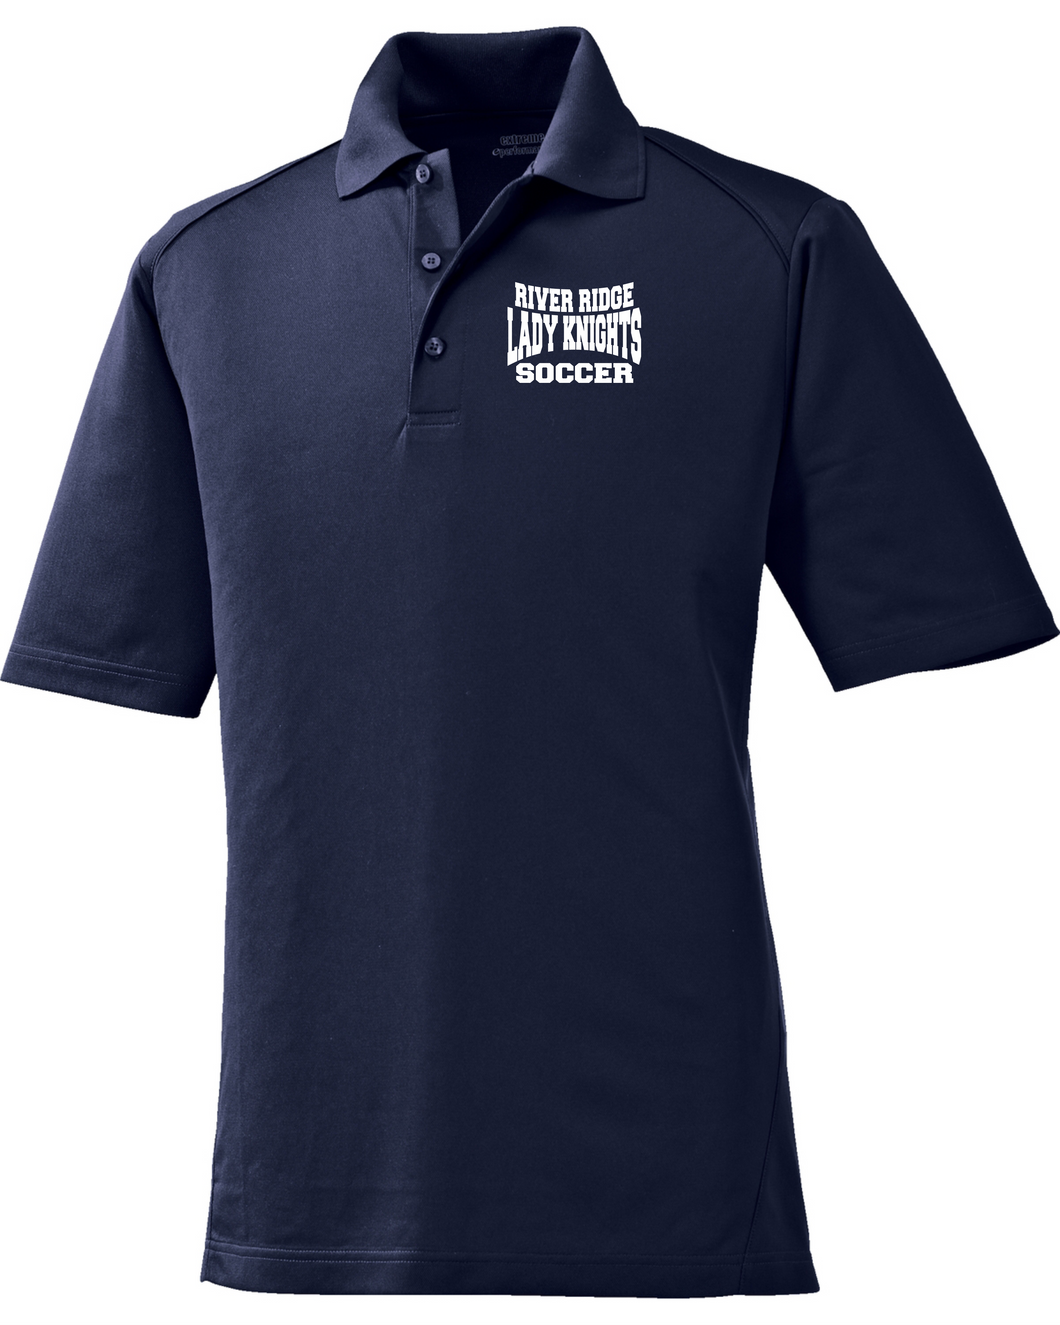 Item RR-SOC-506-2 - Ash City - Extreme Performance™ Shield Snag Protection Short-Sleeve Polo - RR KNIGHTS Soccer Logo